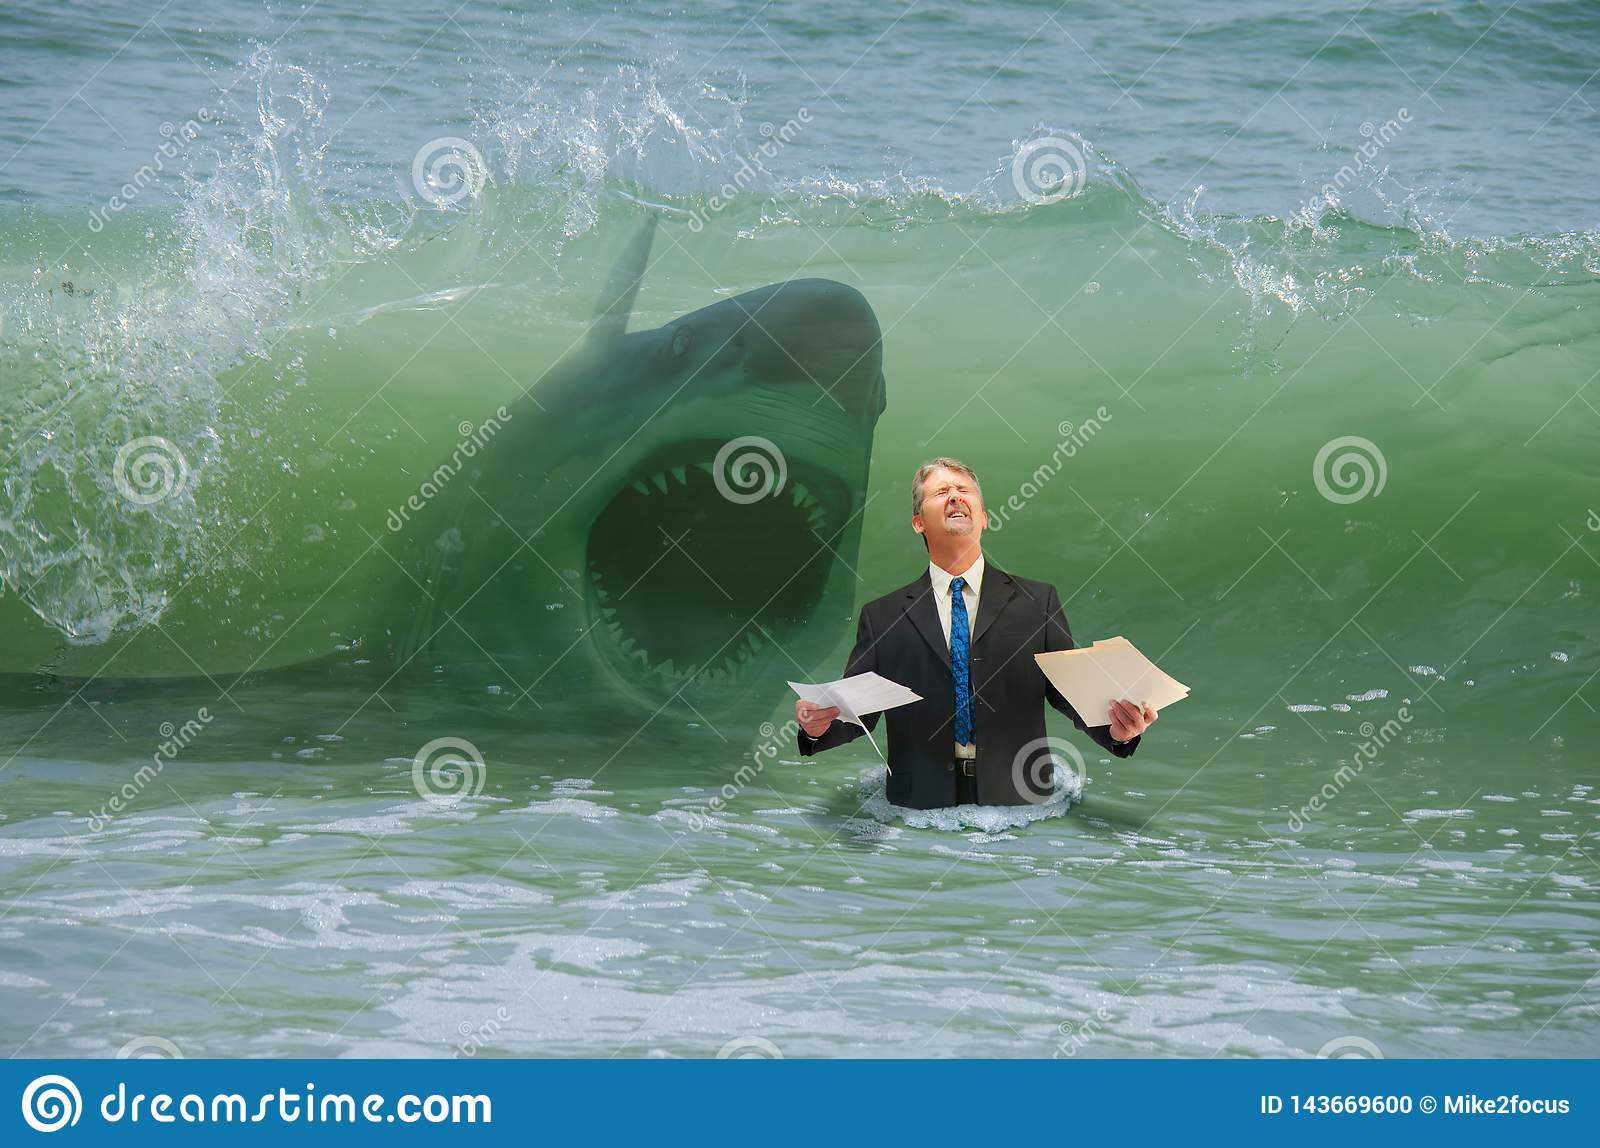 Business pressure man getting hit by wave with attacking shark